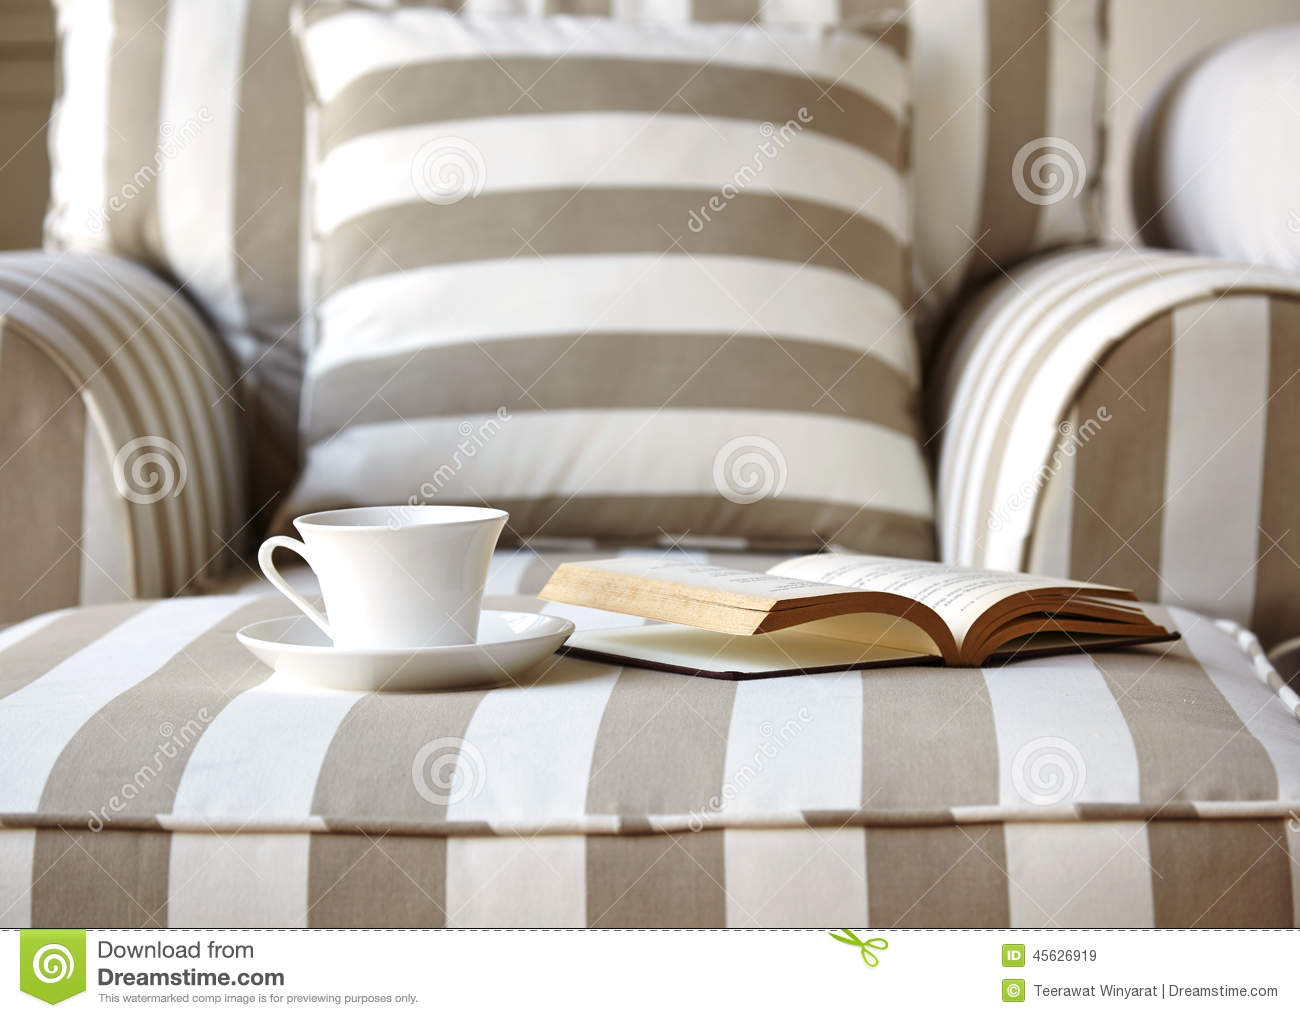 sofa with coffee and book home interior lifestyle stock photo living room sofa with coffee and book royalty free stock images